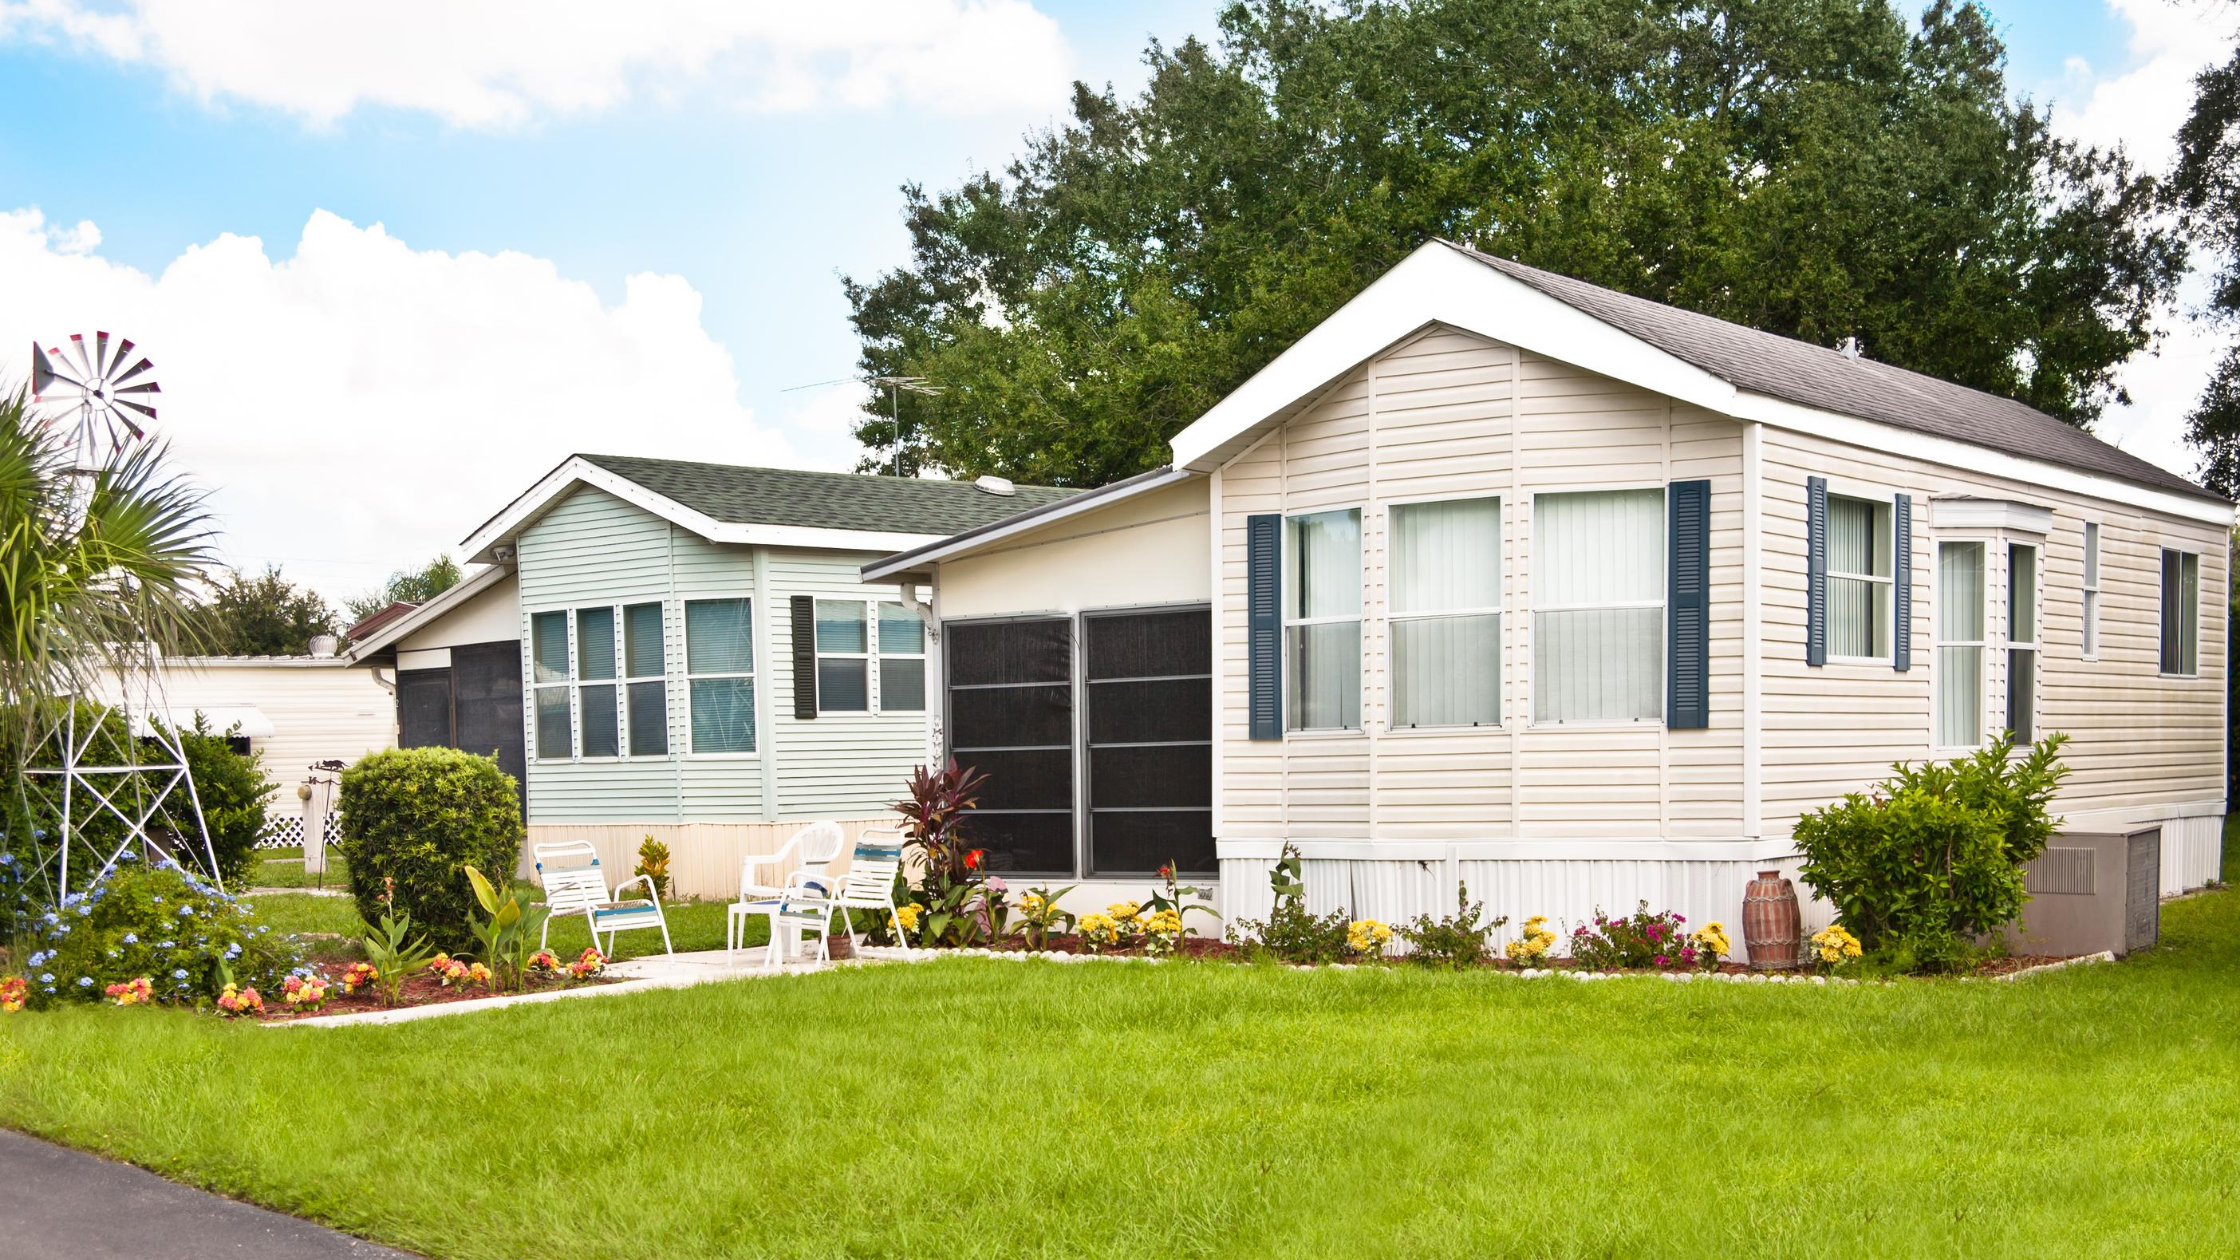 Millennials Search for Affordable Housing in Manufactured Homes